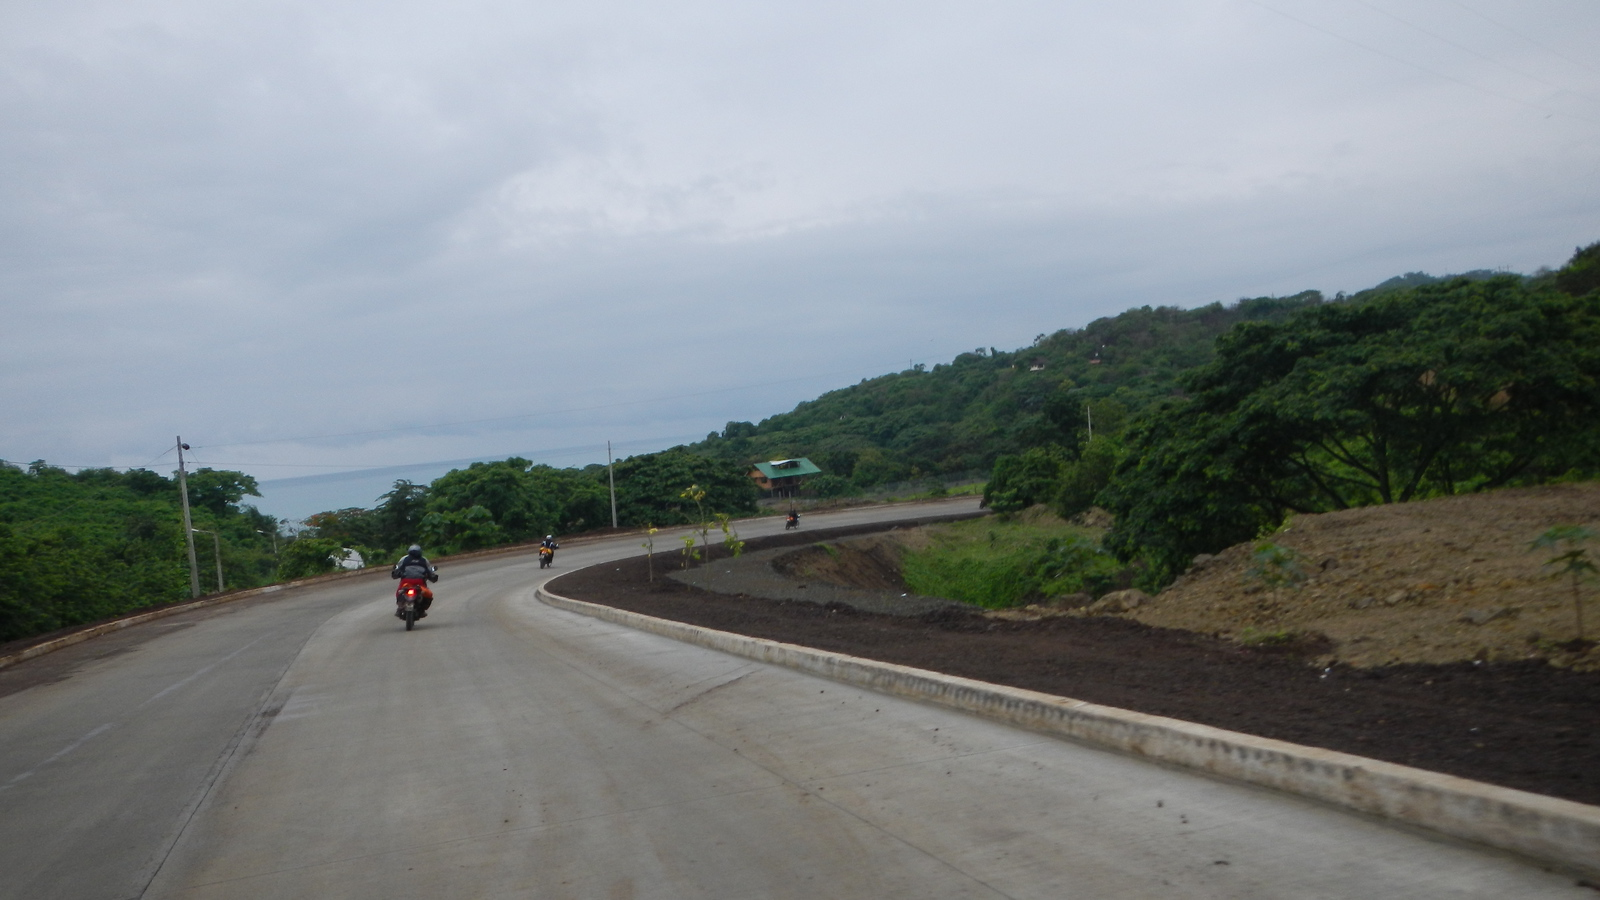 A 7-day Tour of Ecuador's Newly Paved Roads  February 2013